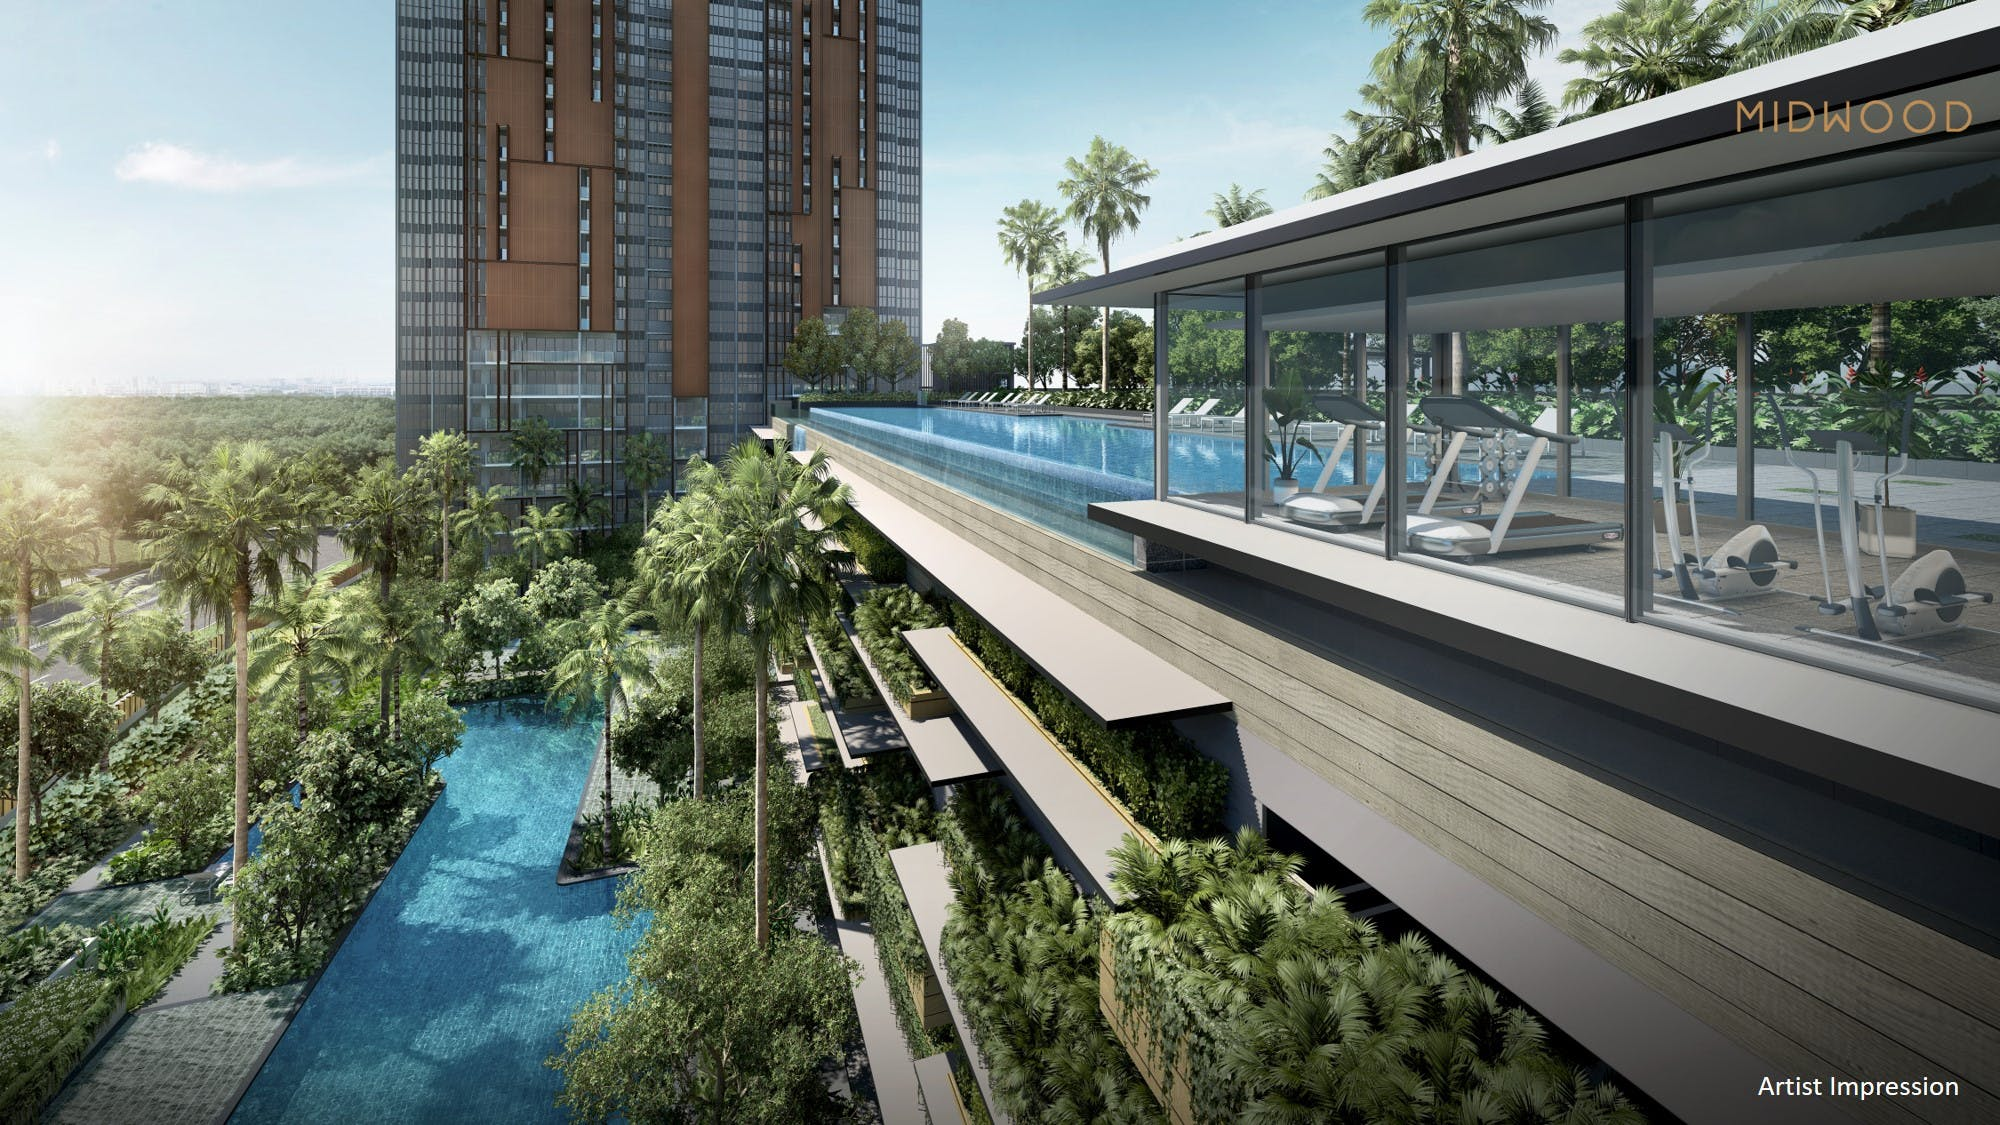 An artist's impression of the serene pool, framed by Midwood's angular architecture.